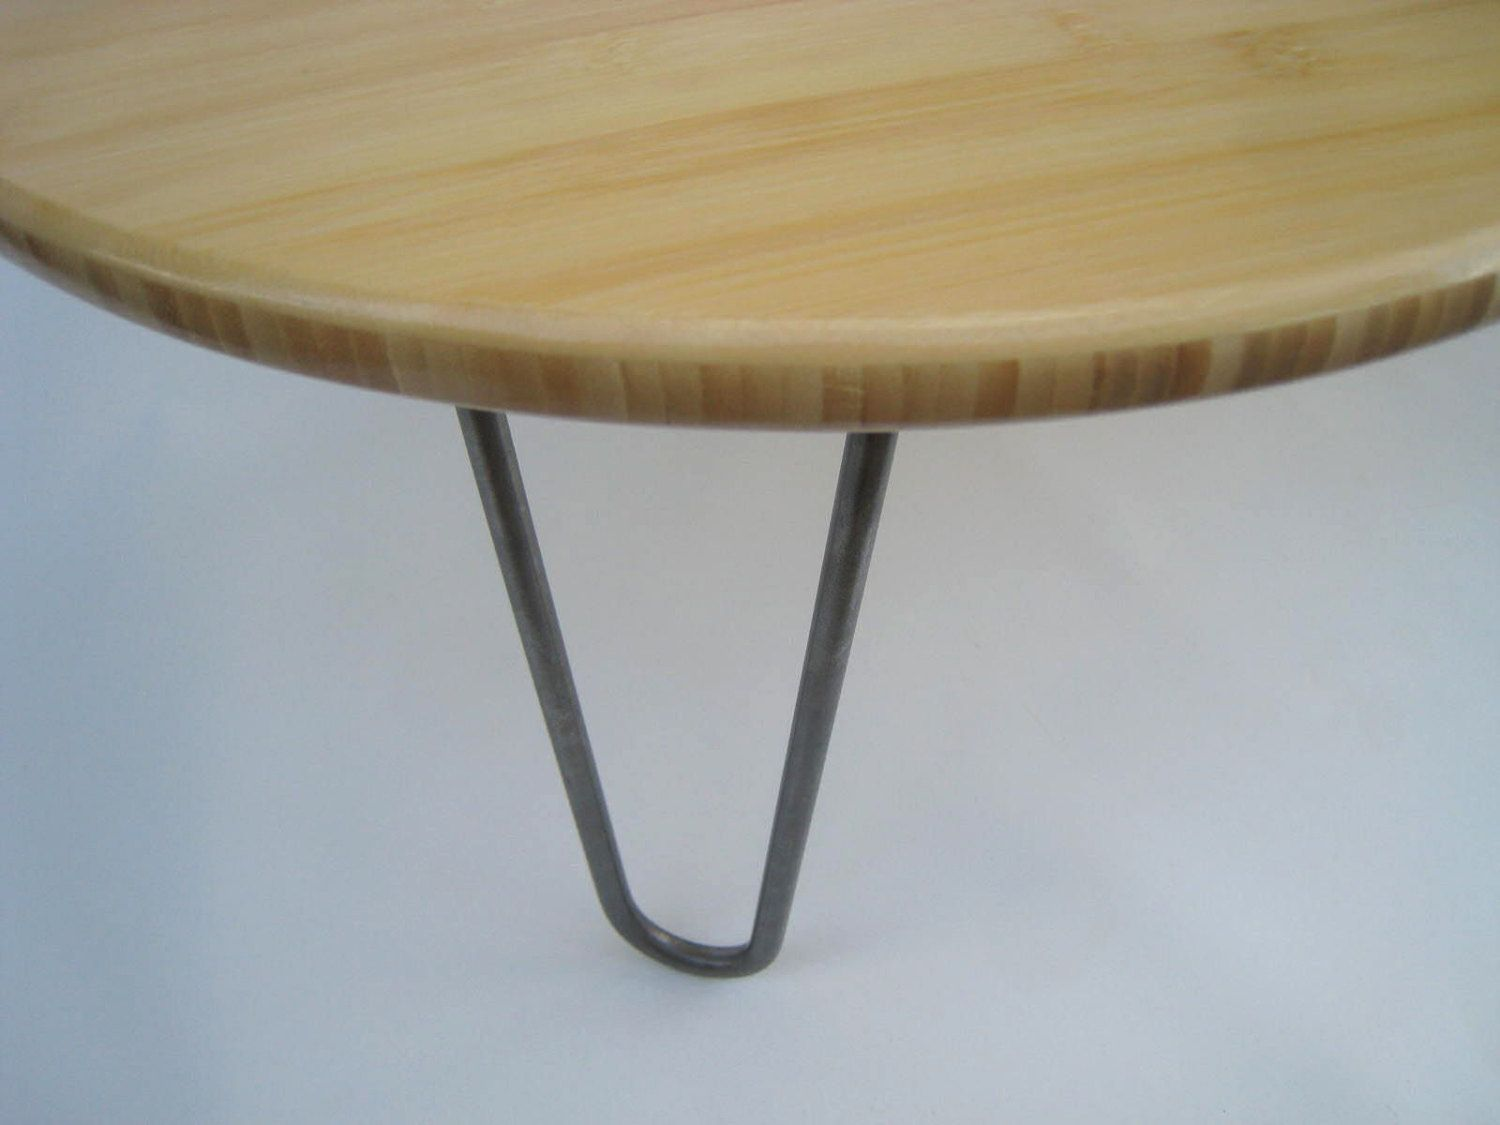 Buy a hand crafted kidney bean shaped coffee table mid century buy a hand crafted kidney bean shaped coffee table mid century modern atomic era design in natural bamboo made to order from studio1212 custommade geotapseo Choice Image